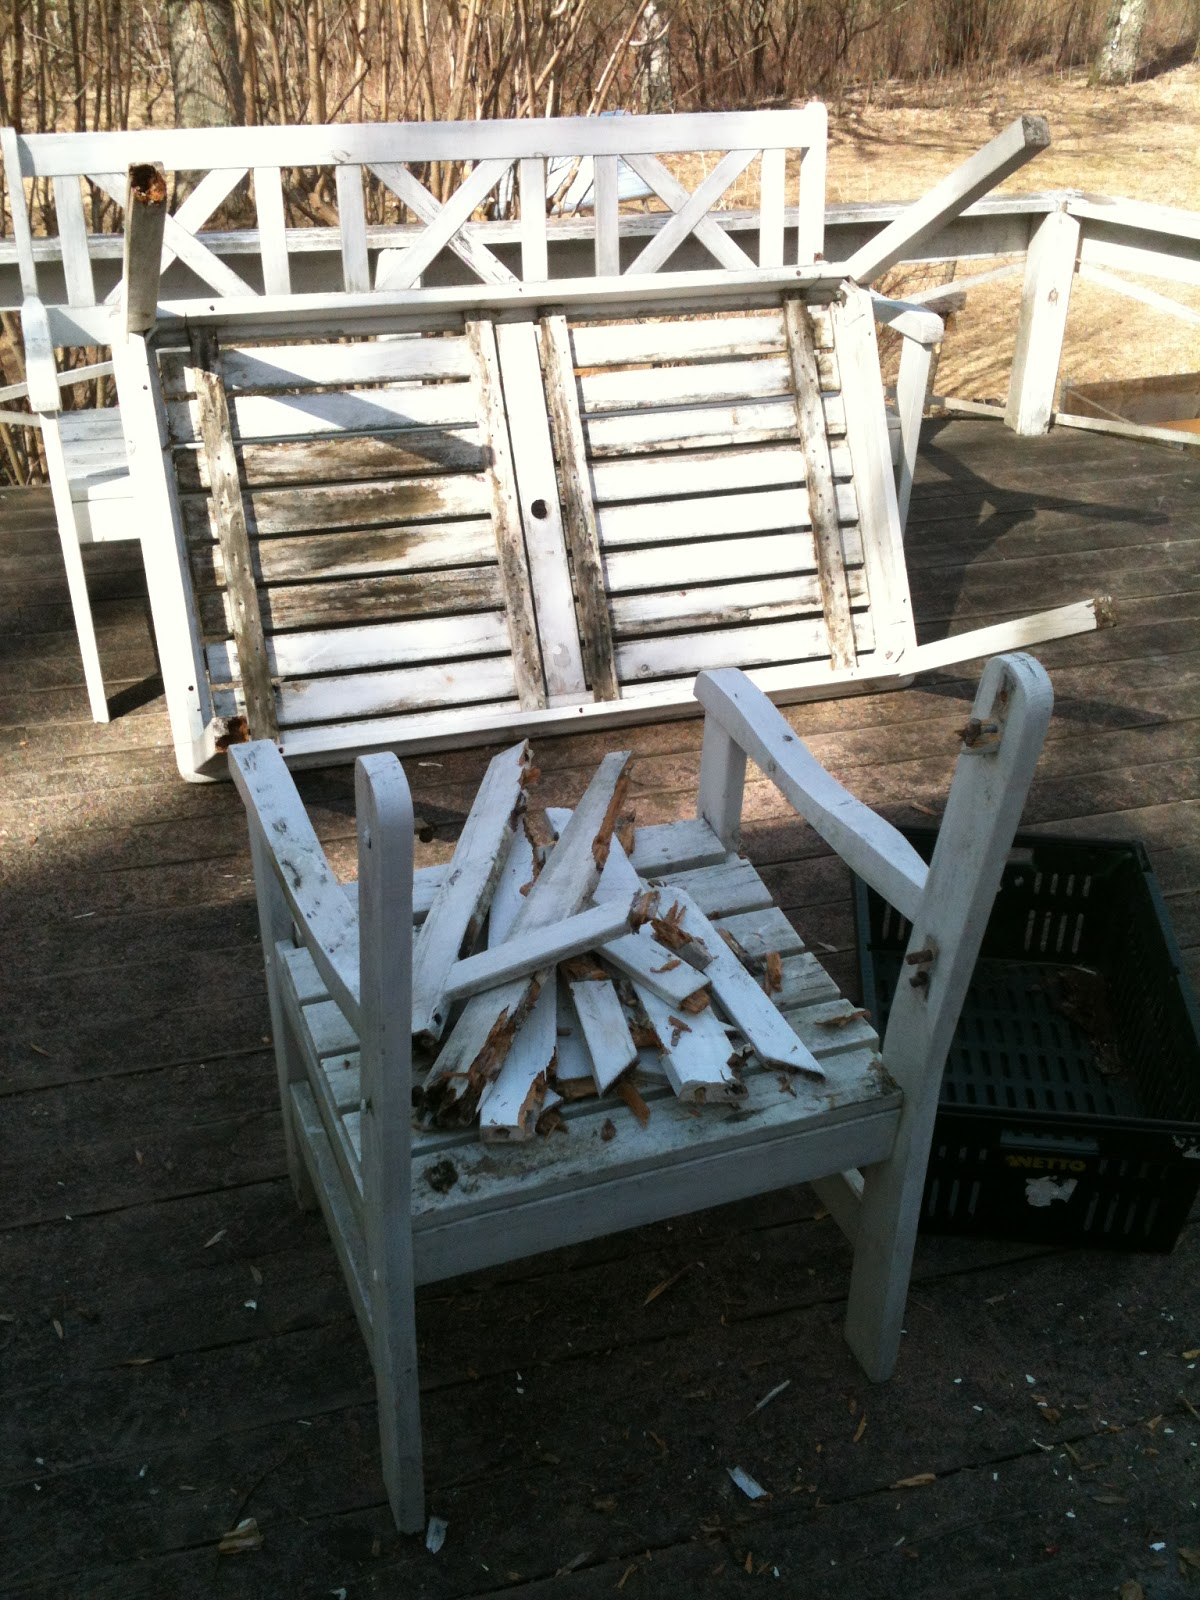 repair garden chairs the chair outlet chop wood carry water plant seeds repairing furniture when i took table and out this year was surprised how fast mould rot they were almost distroyed totally so decided to